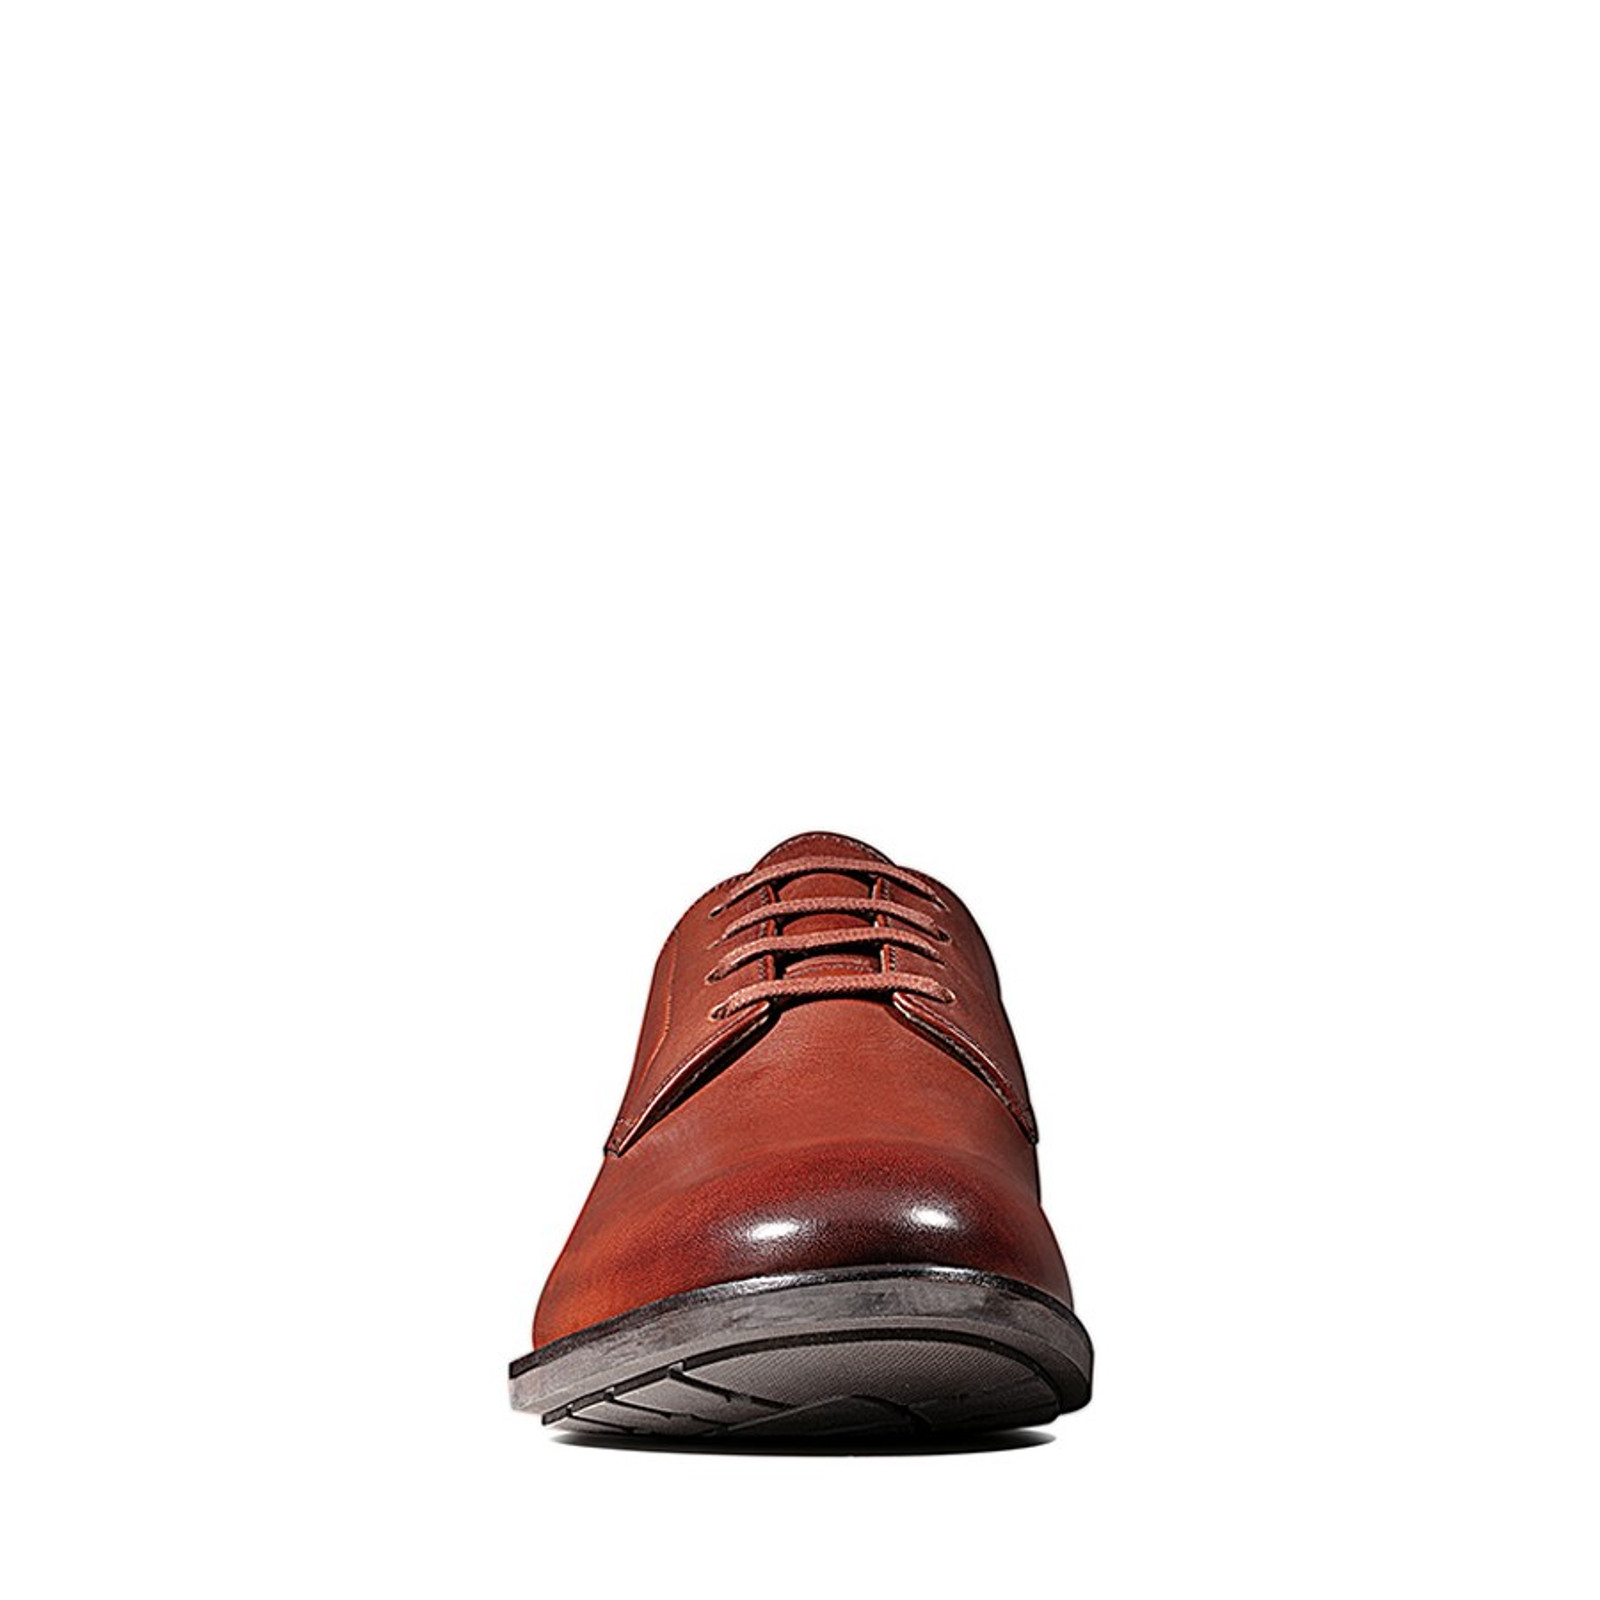 Clarks Mens RONNIE WALK British Tan Leather